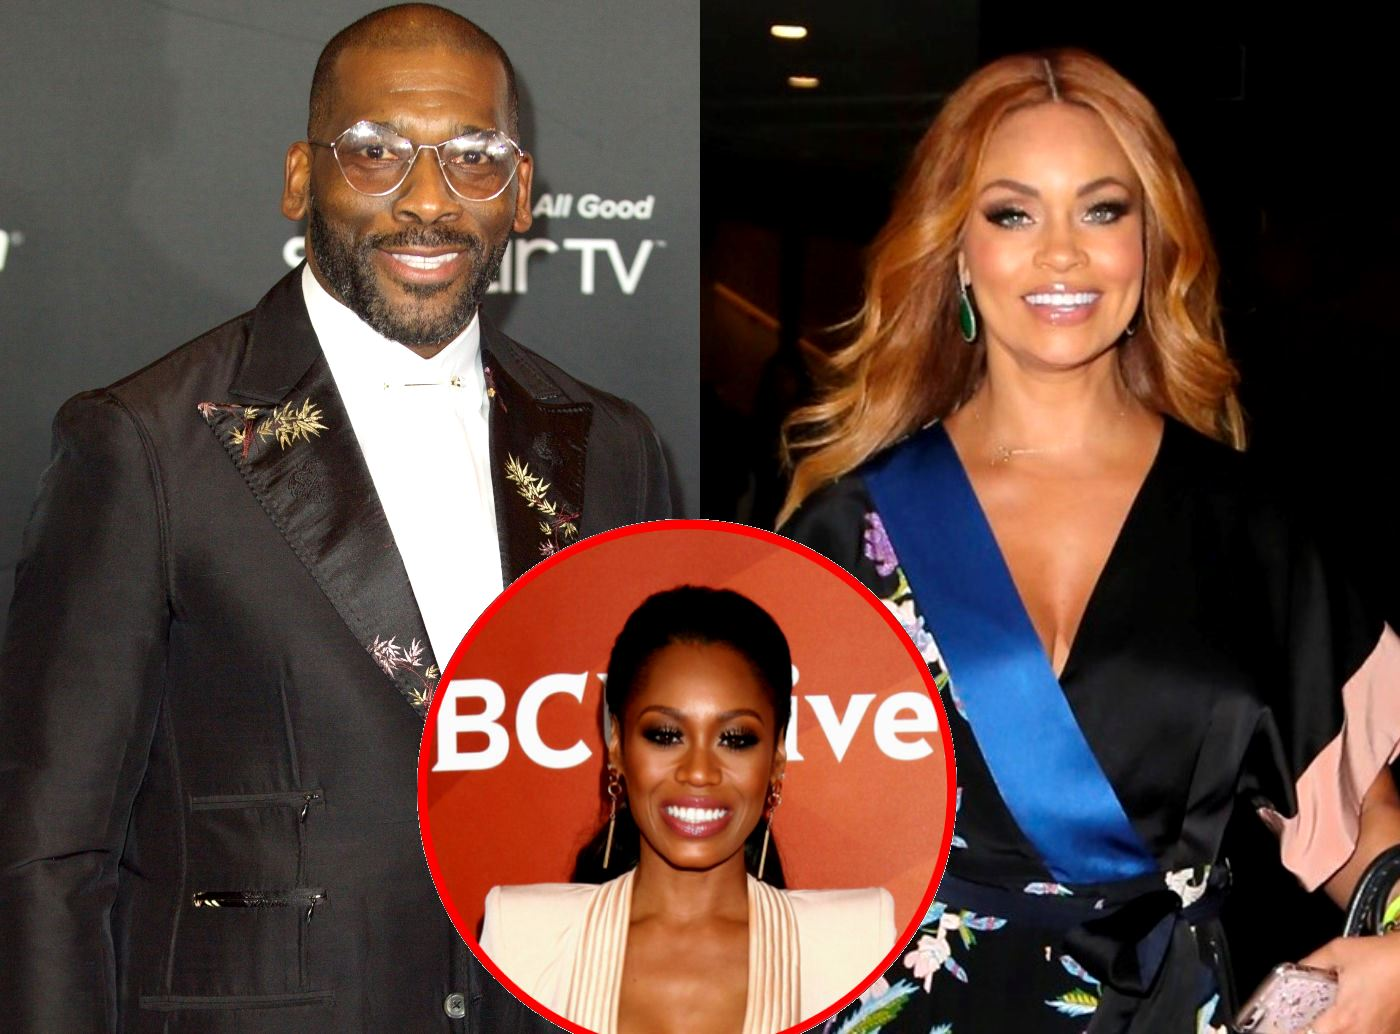 Gizelle Bryant's Ex Husband Jamal Bryant Reacts to Cheating Claims Made by Monique Samuels on RHOP Reunion, See His Post